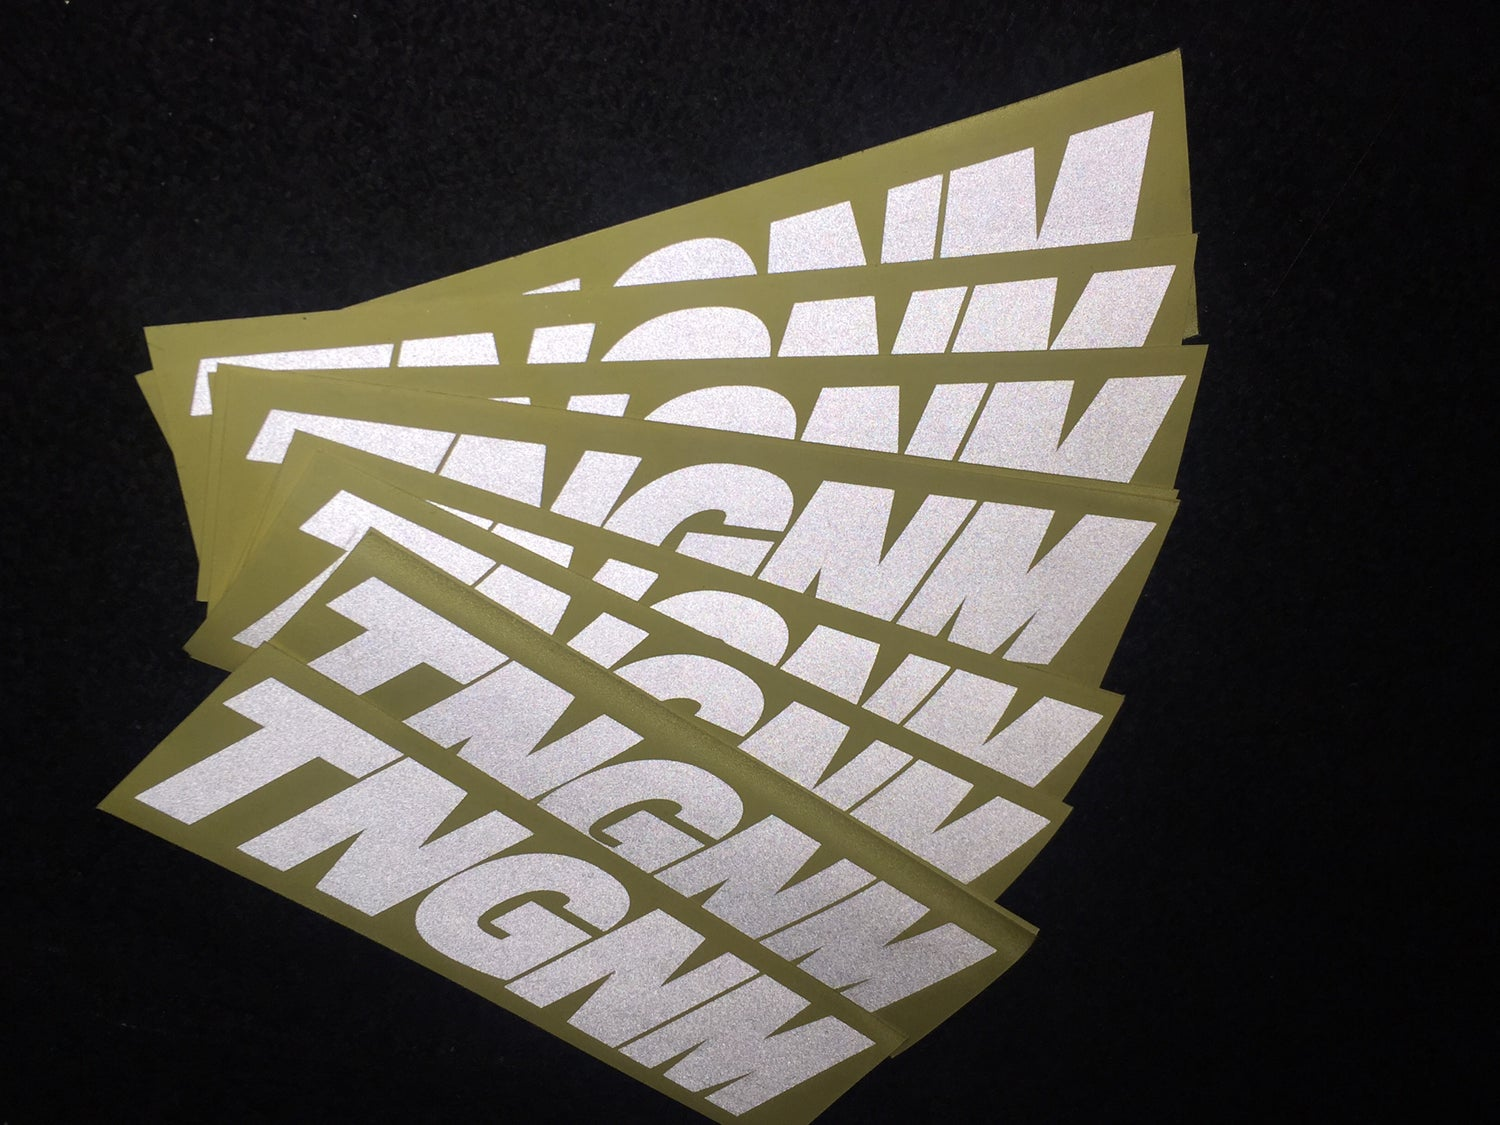 Image of TNGNM 3m Relfective Decal 7x3